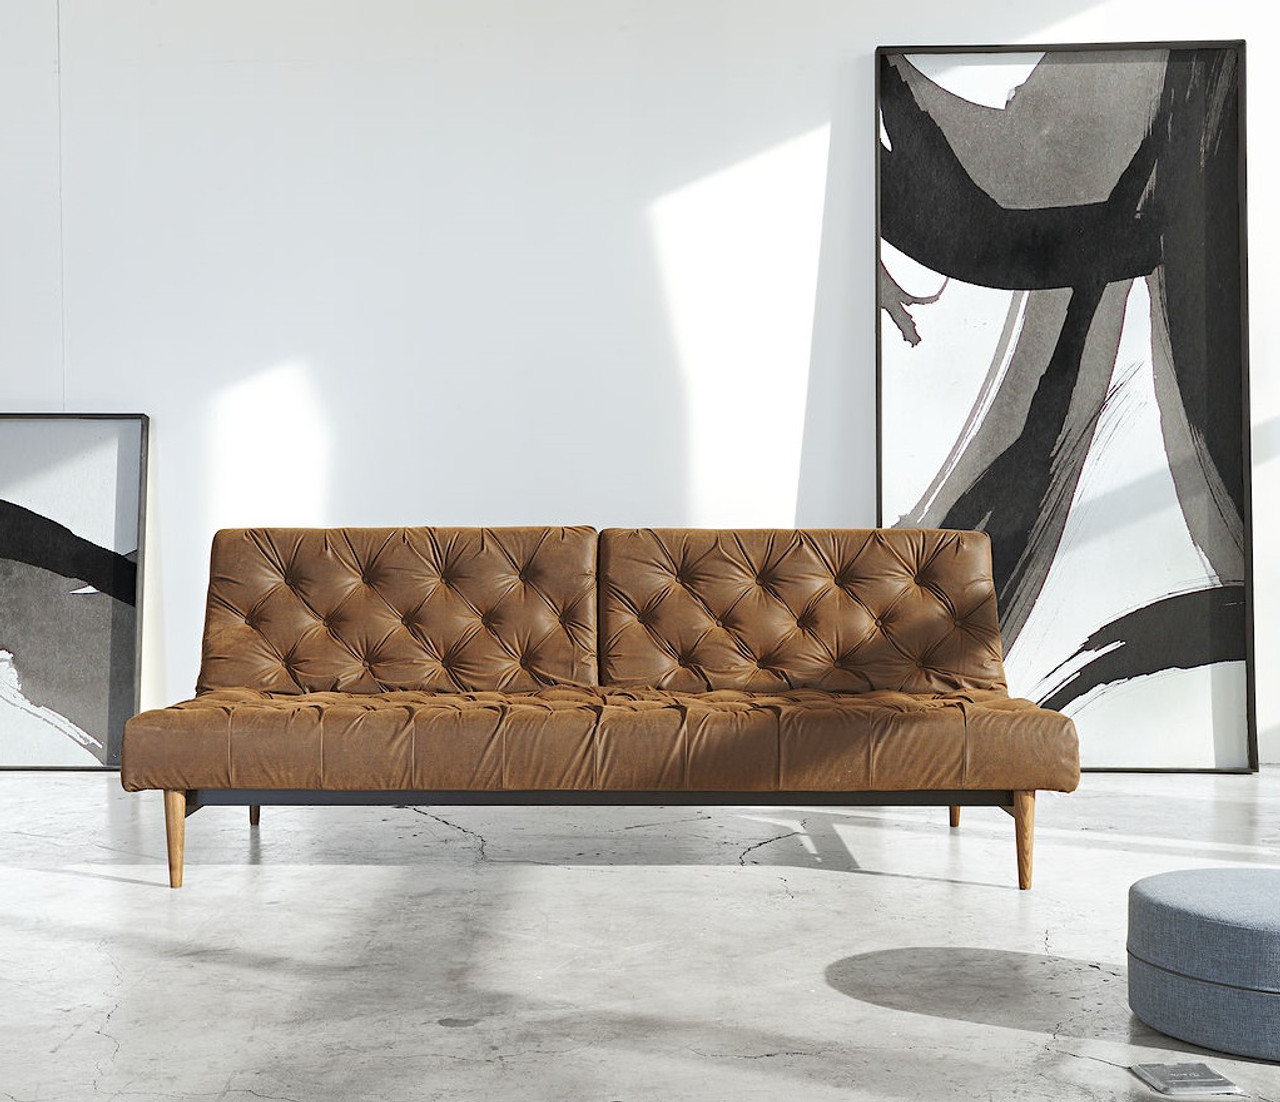 Captivating Innovation USA Oldschool Vintage Leather Chesterfield Sleeper Sofa Bed